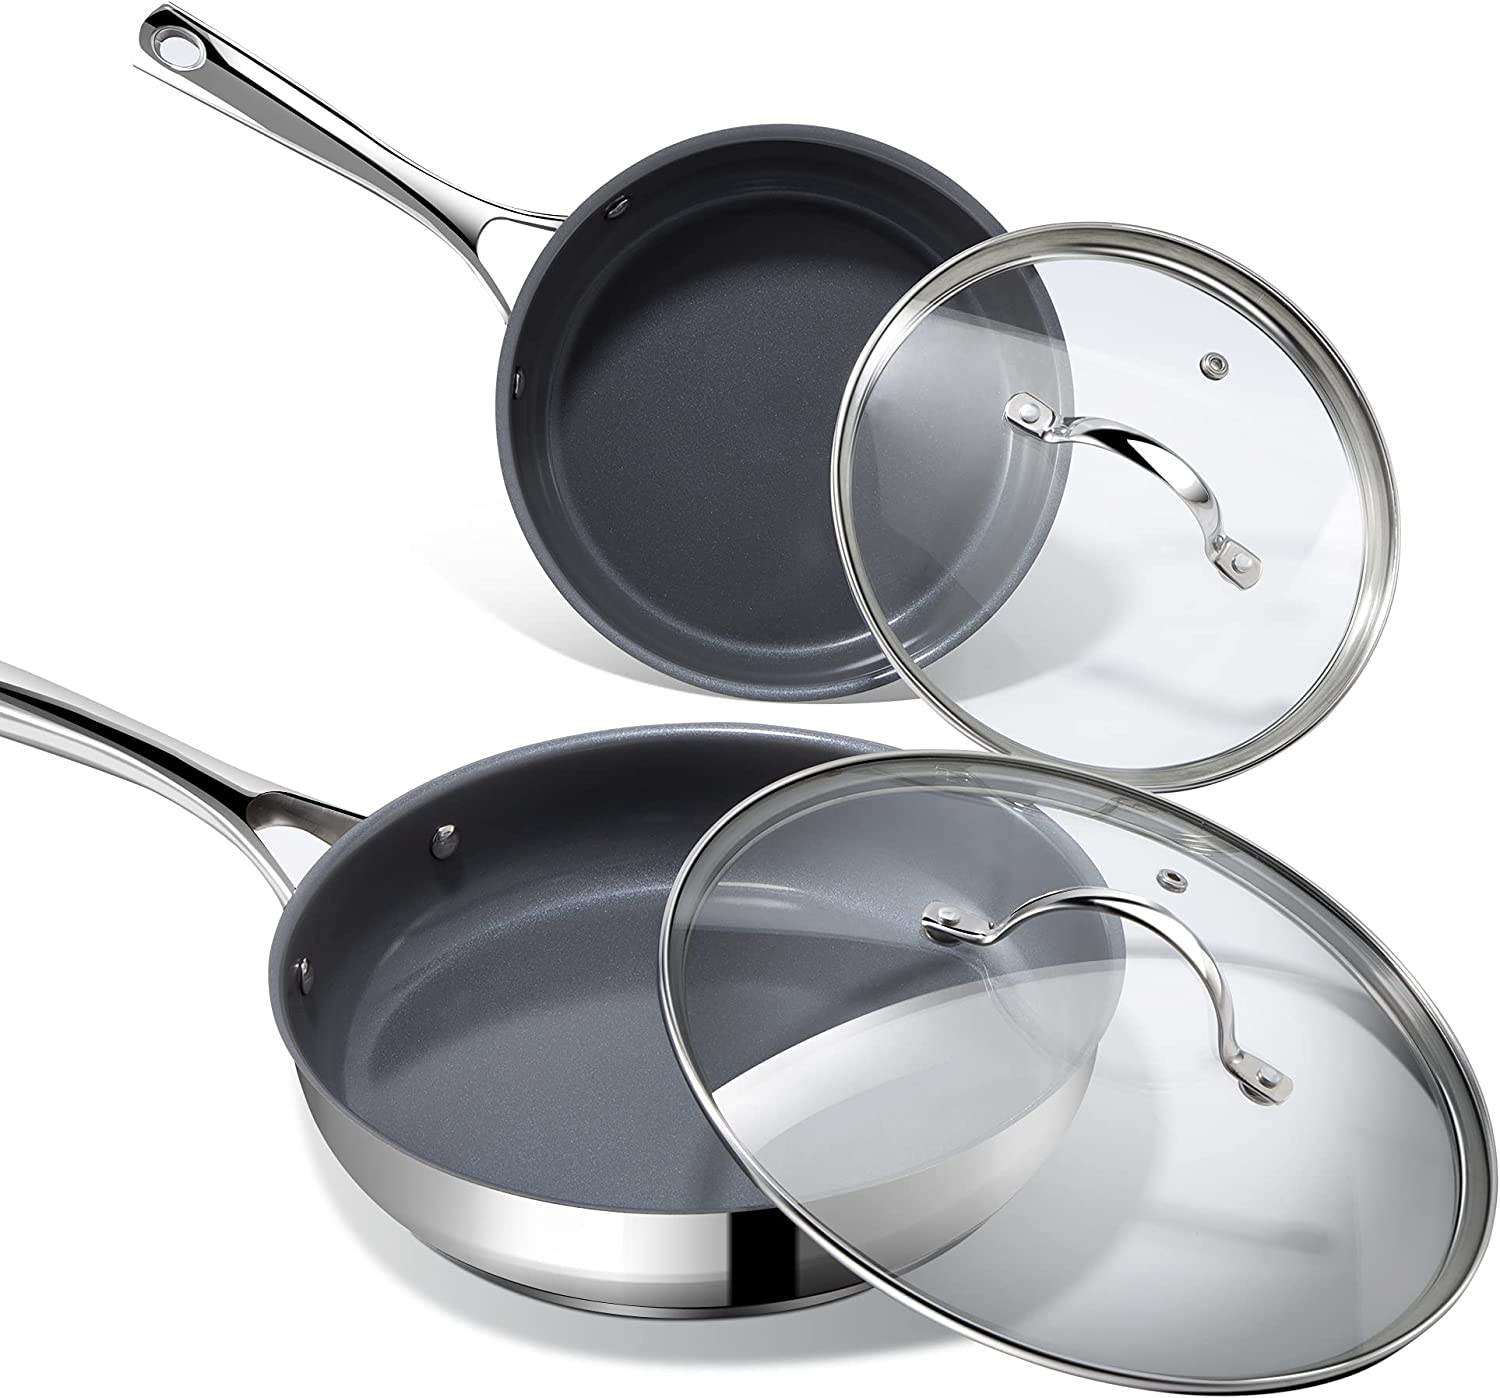 Nonstick Frying Pans with Lids, REDMOND Stainless Steel Skillets 8 inch & 10...